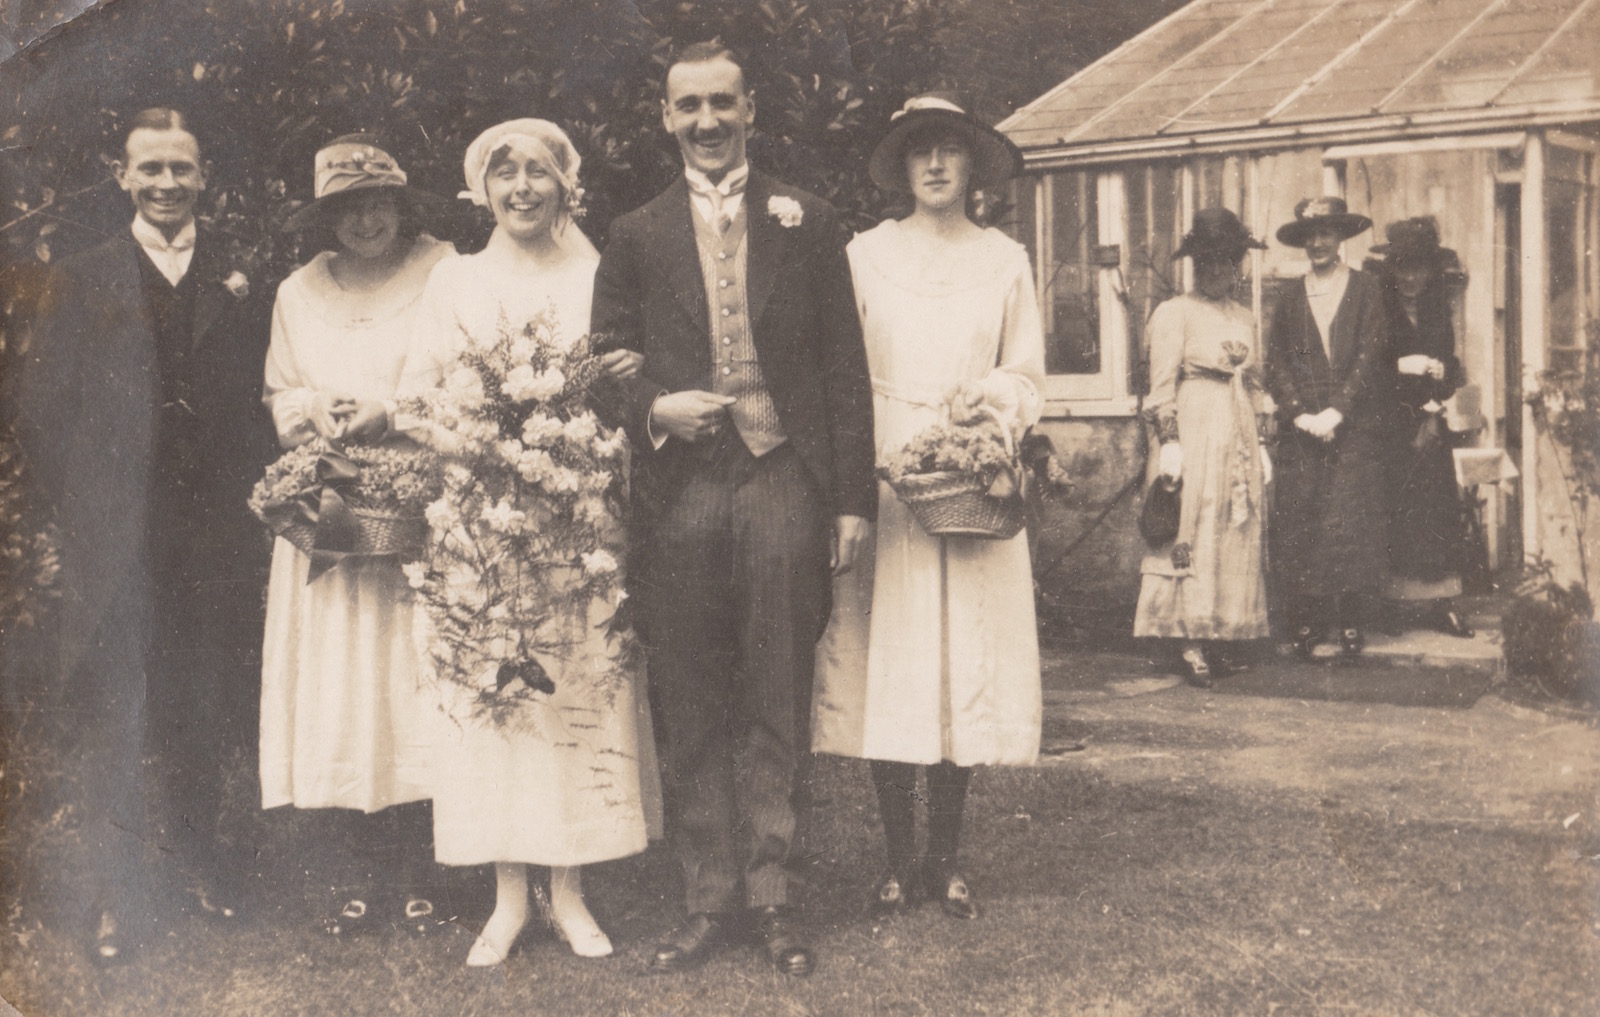 Muriel Baillie, Bill, Dora and sister Hilda